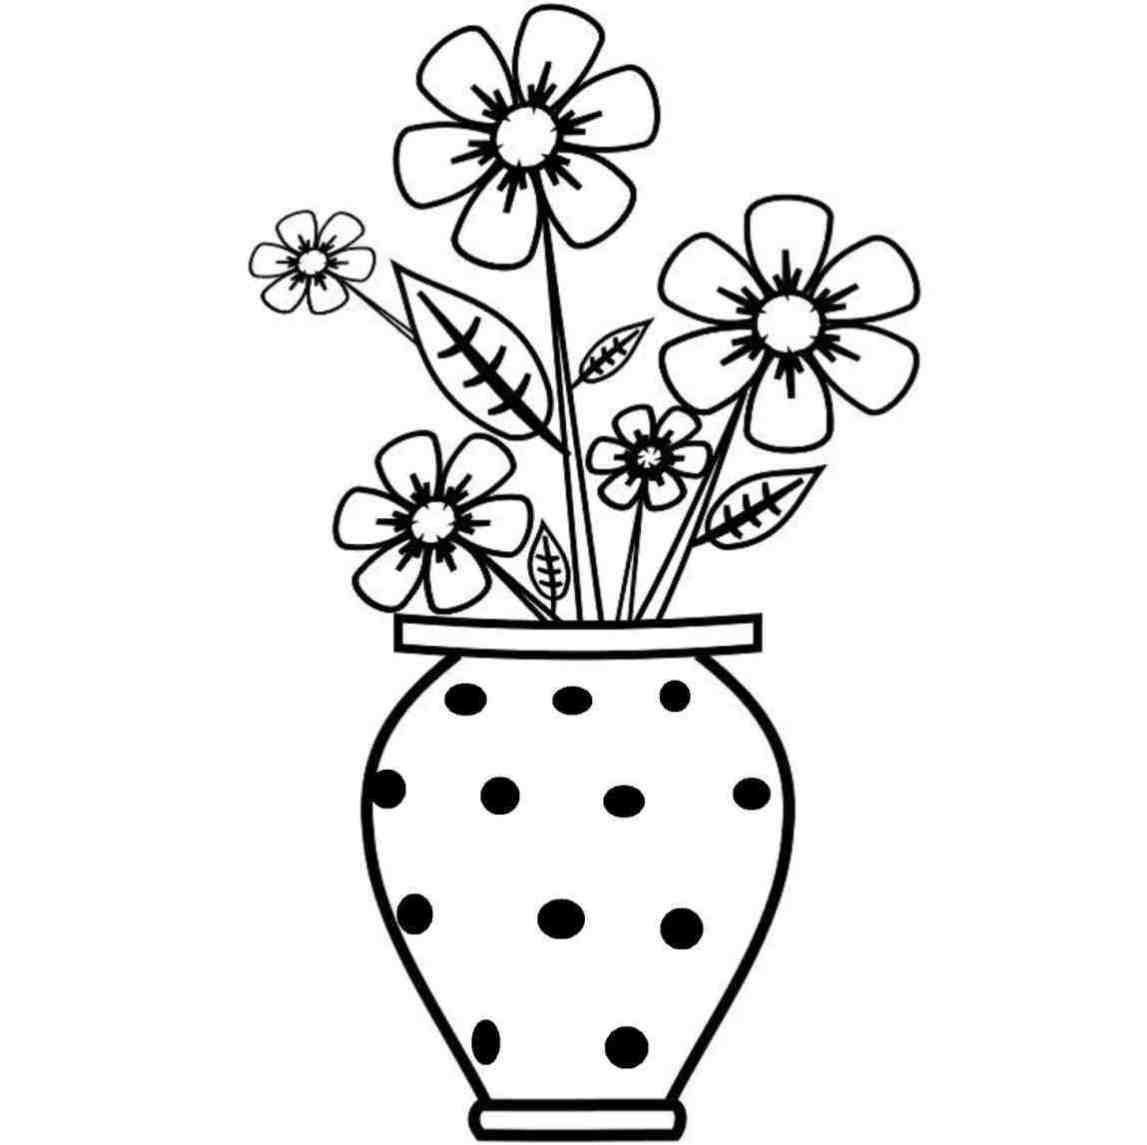 Flower Drawings For Kids Paijo Network Flower Drawing For Kids Easy Flower Drawings Flower Vase Drawing